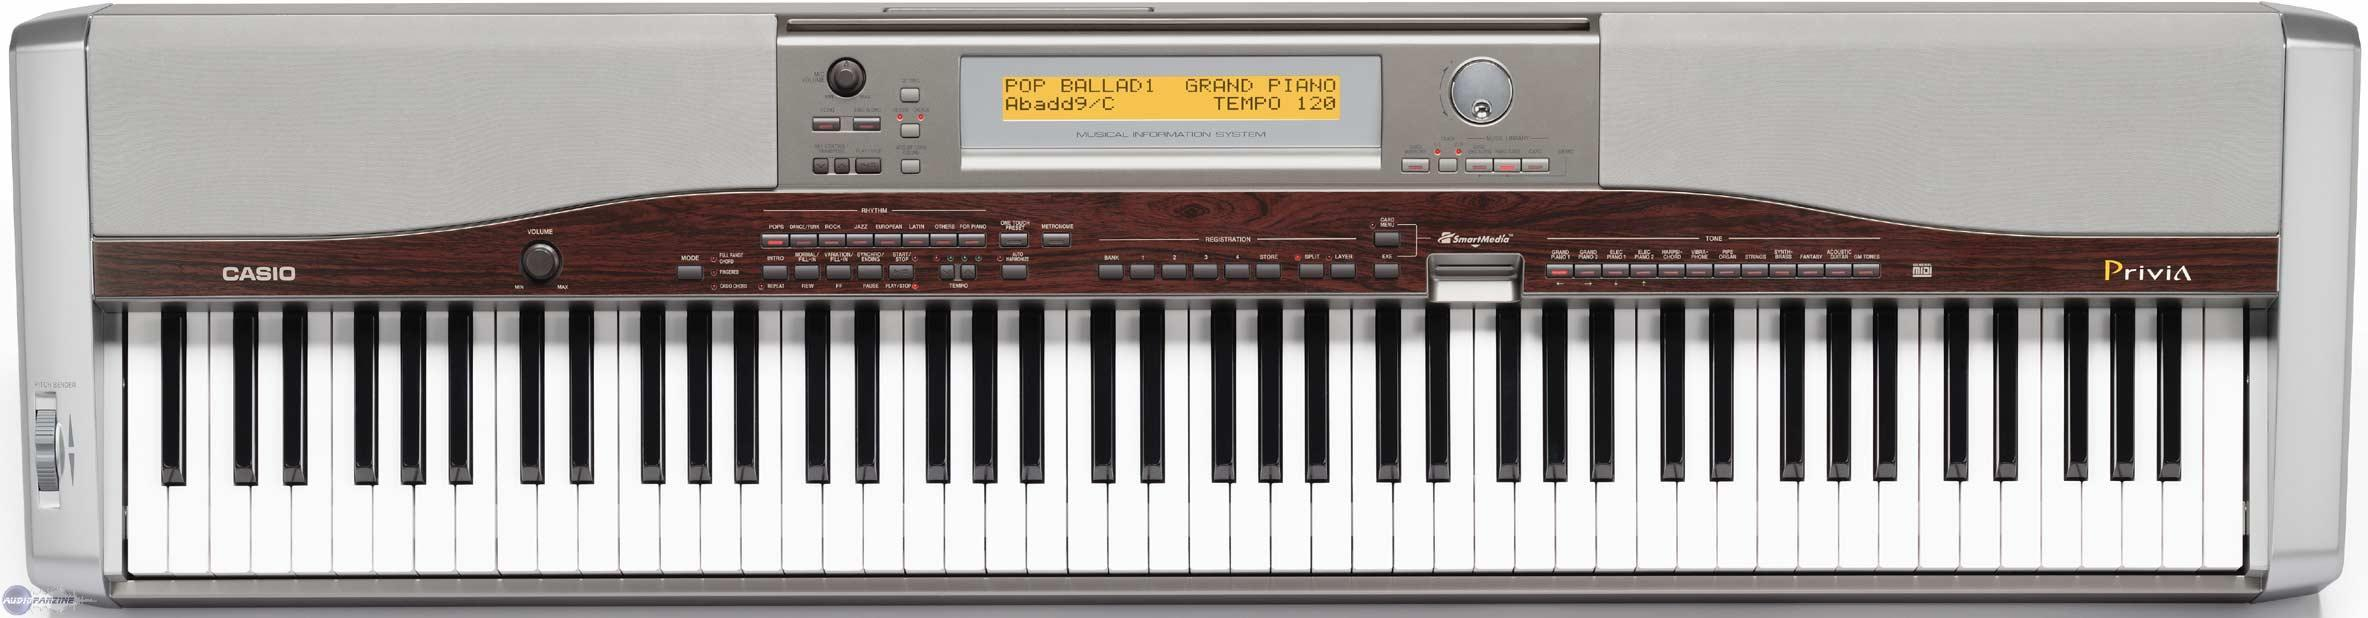 CASIO PRIVIA PX400R DRIVER WINDOWS 7 (2019)